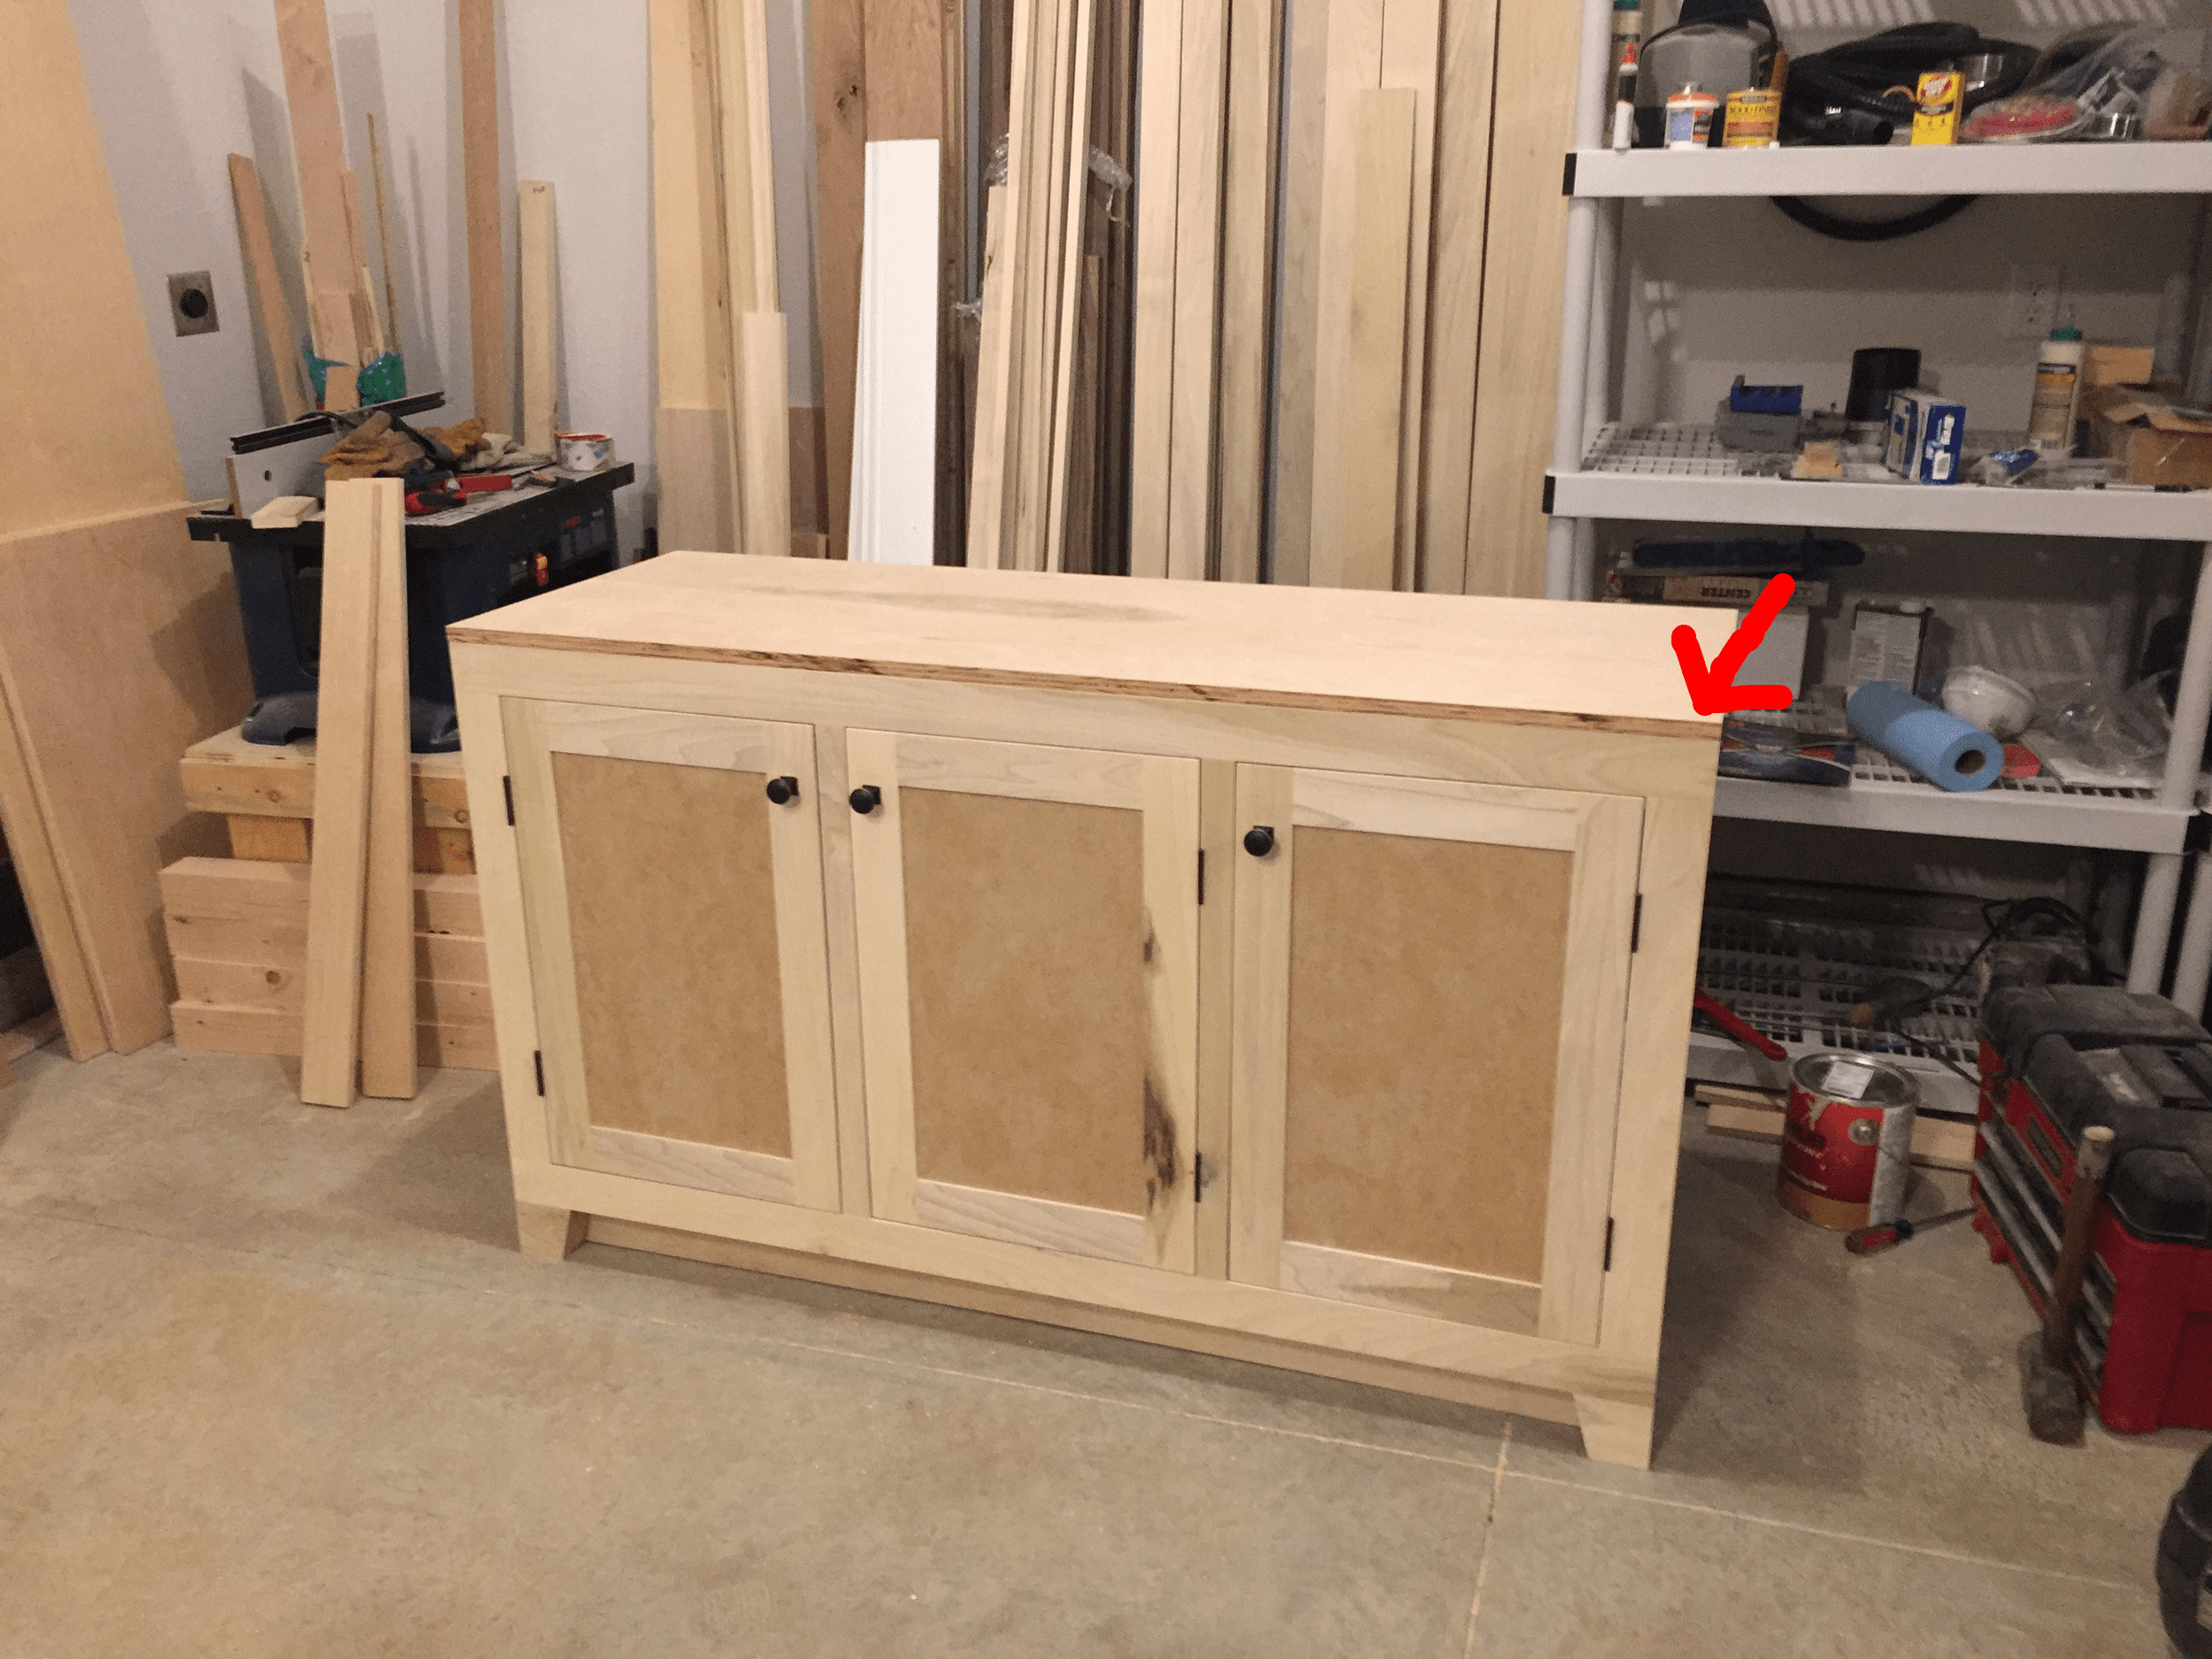 How to Build a Built in Part 1 of 3   The Cabinets     Philip Miller     I have attached the top to the cabinet and it is now ready for a 1in